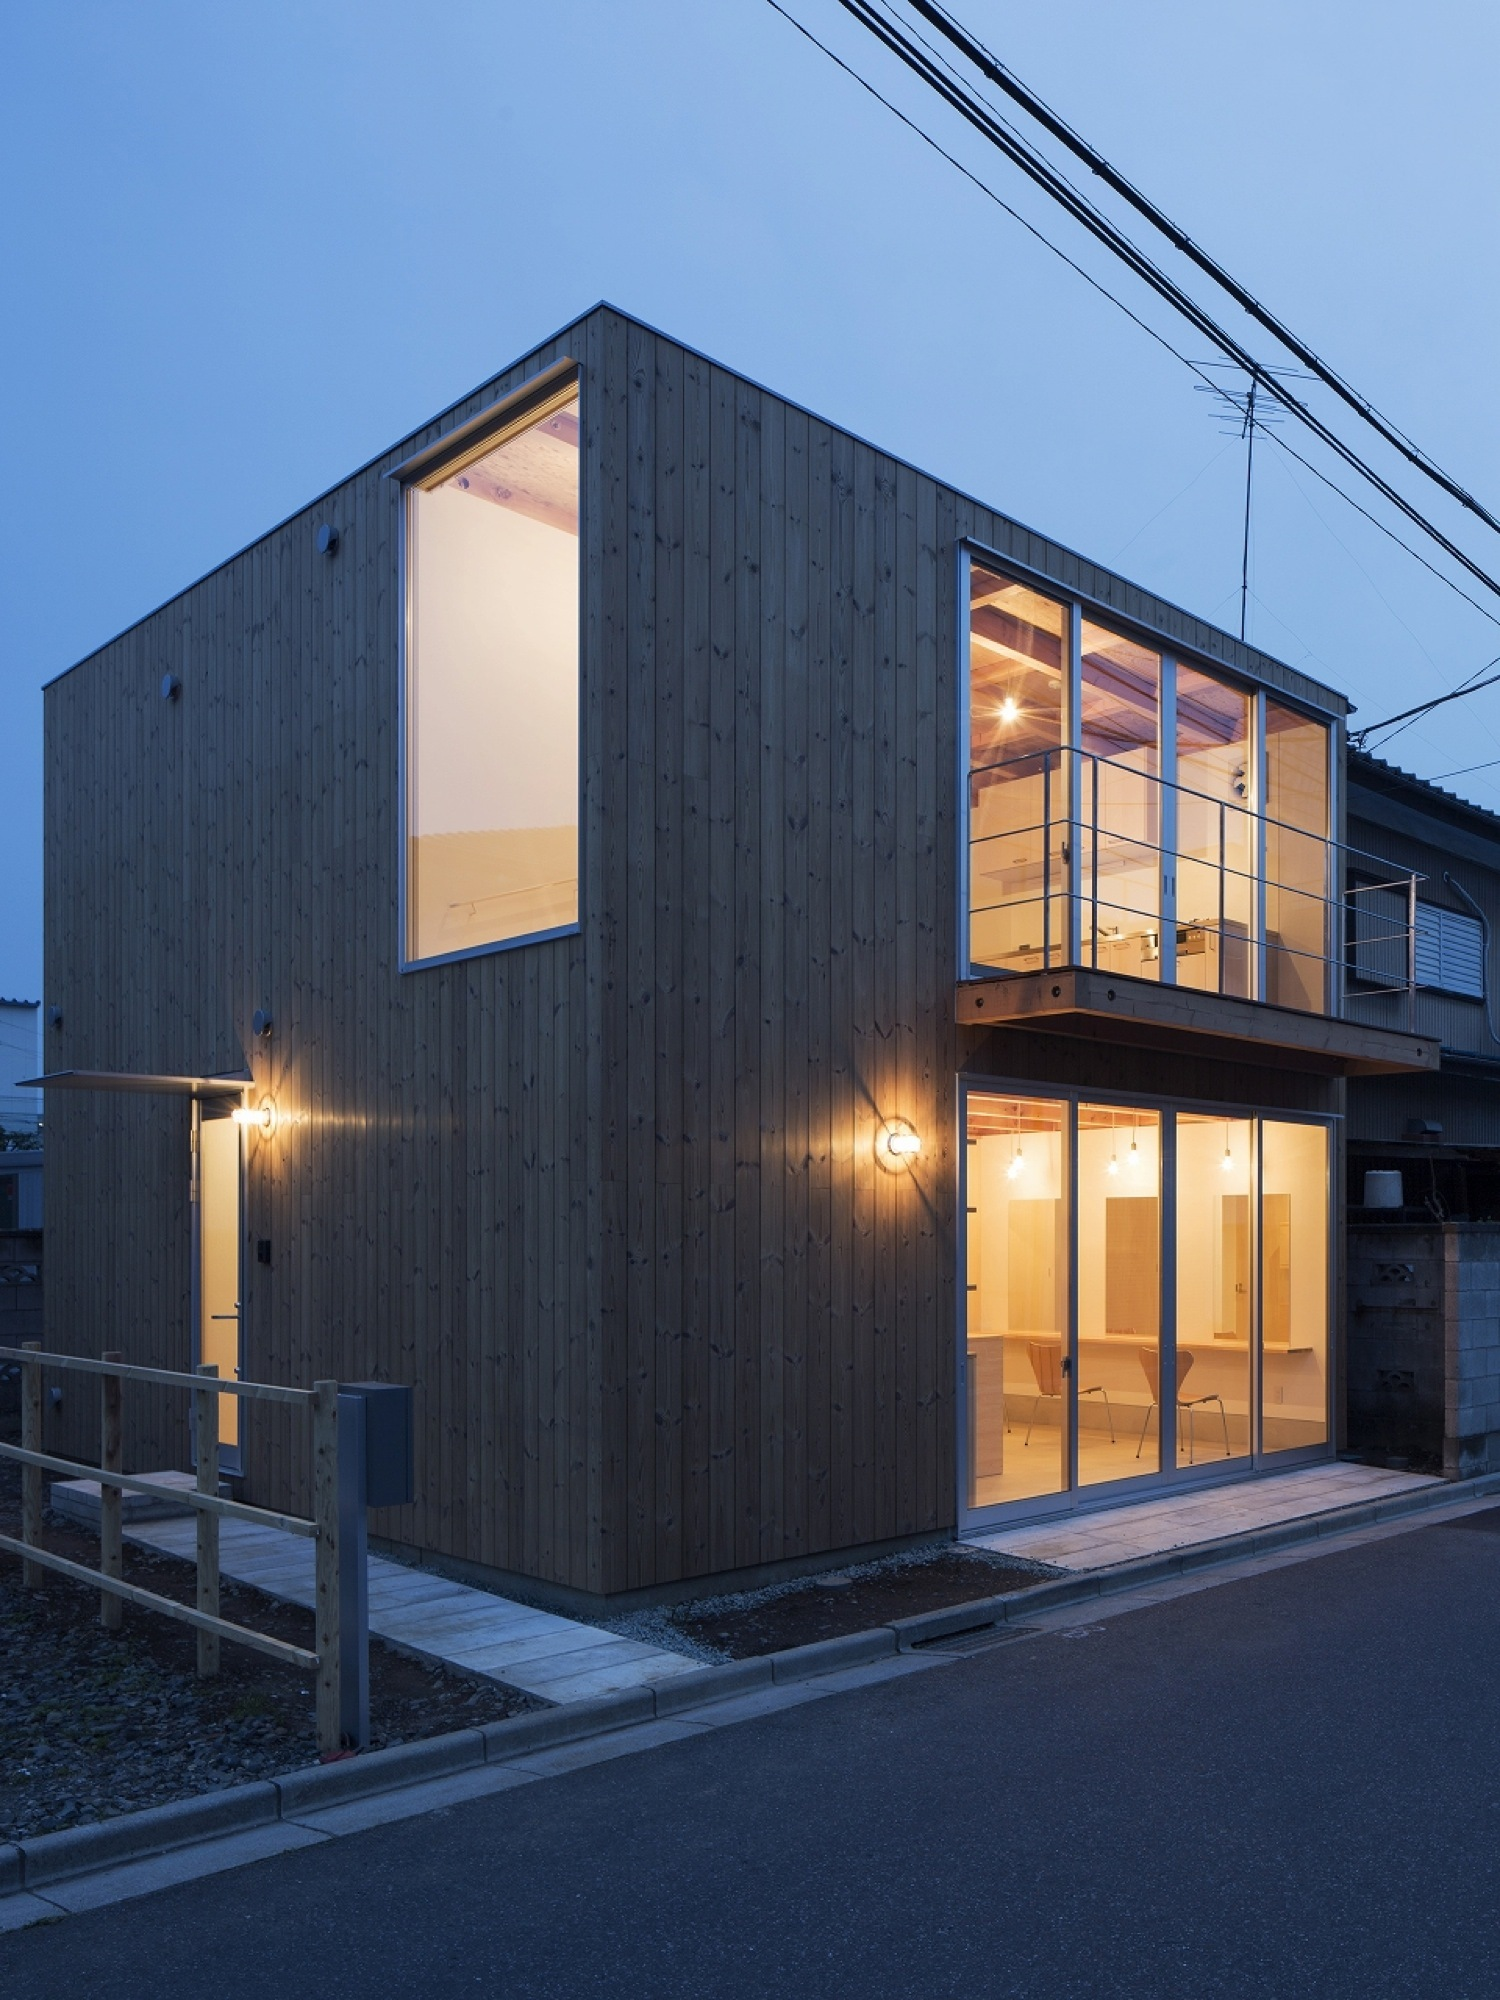 Gallery of wooden box house suzuki architects 8 for House in a box